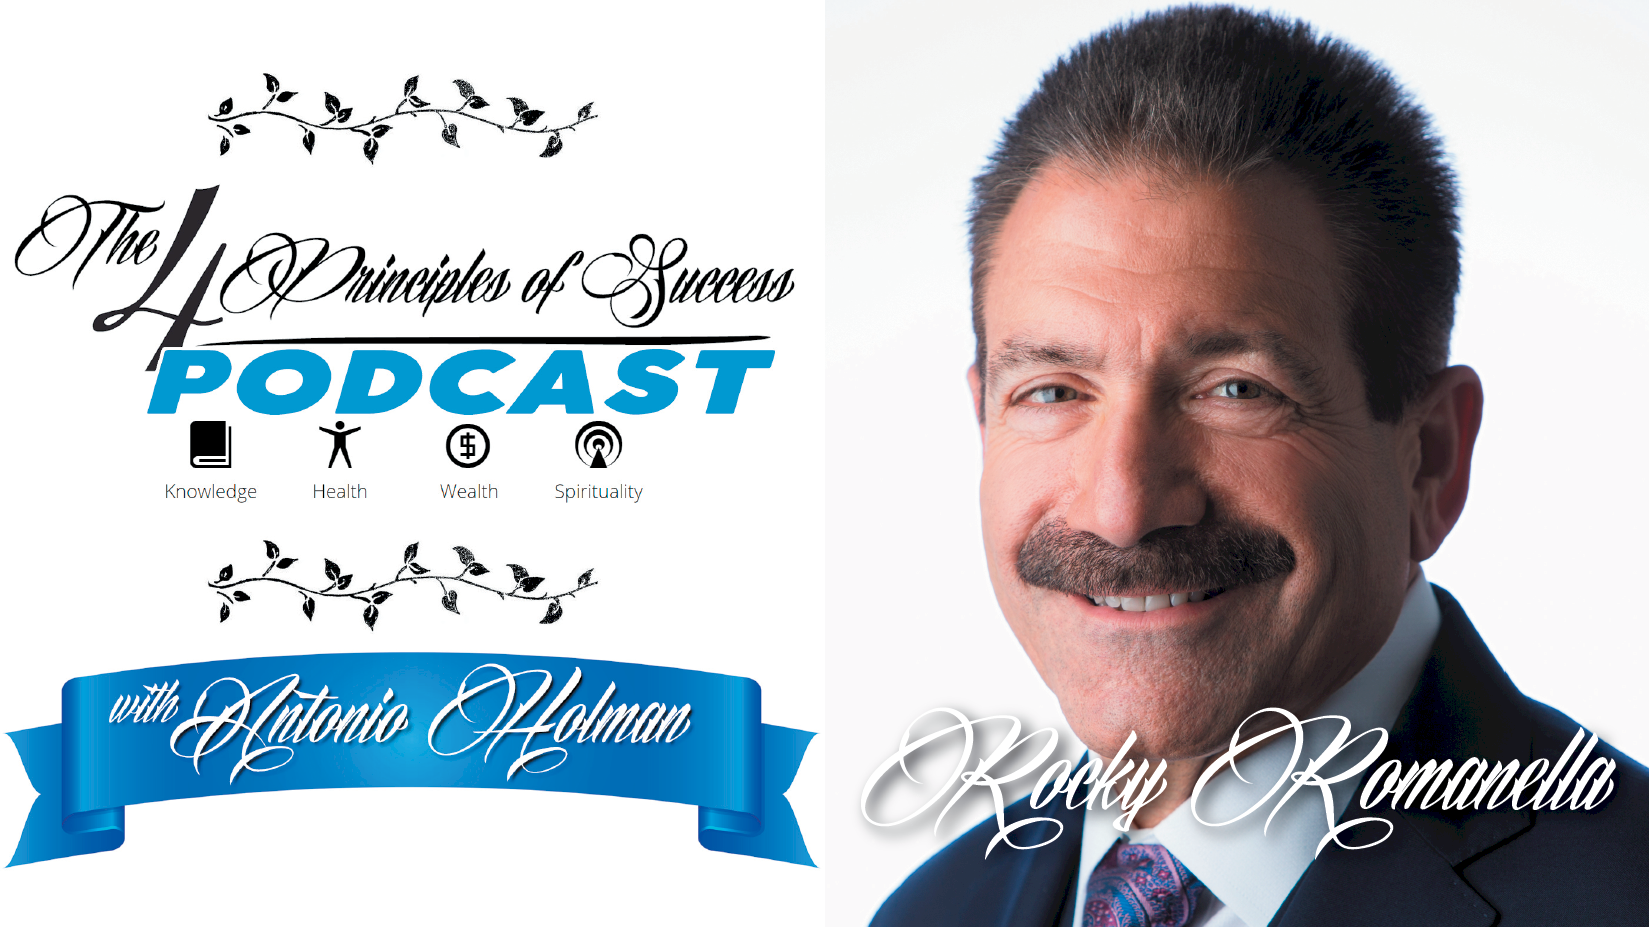 The 4 Principles of Success guest Rocky Romanella